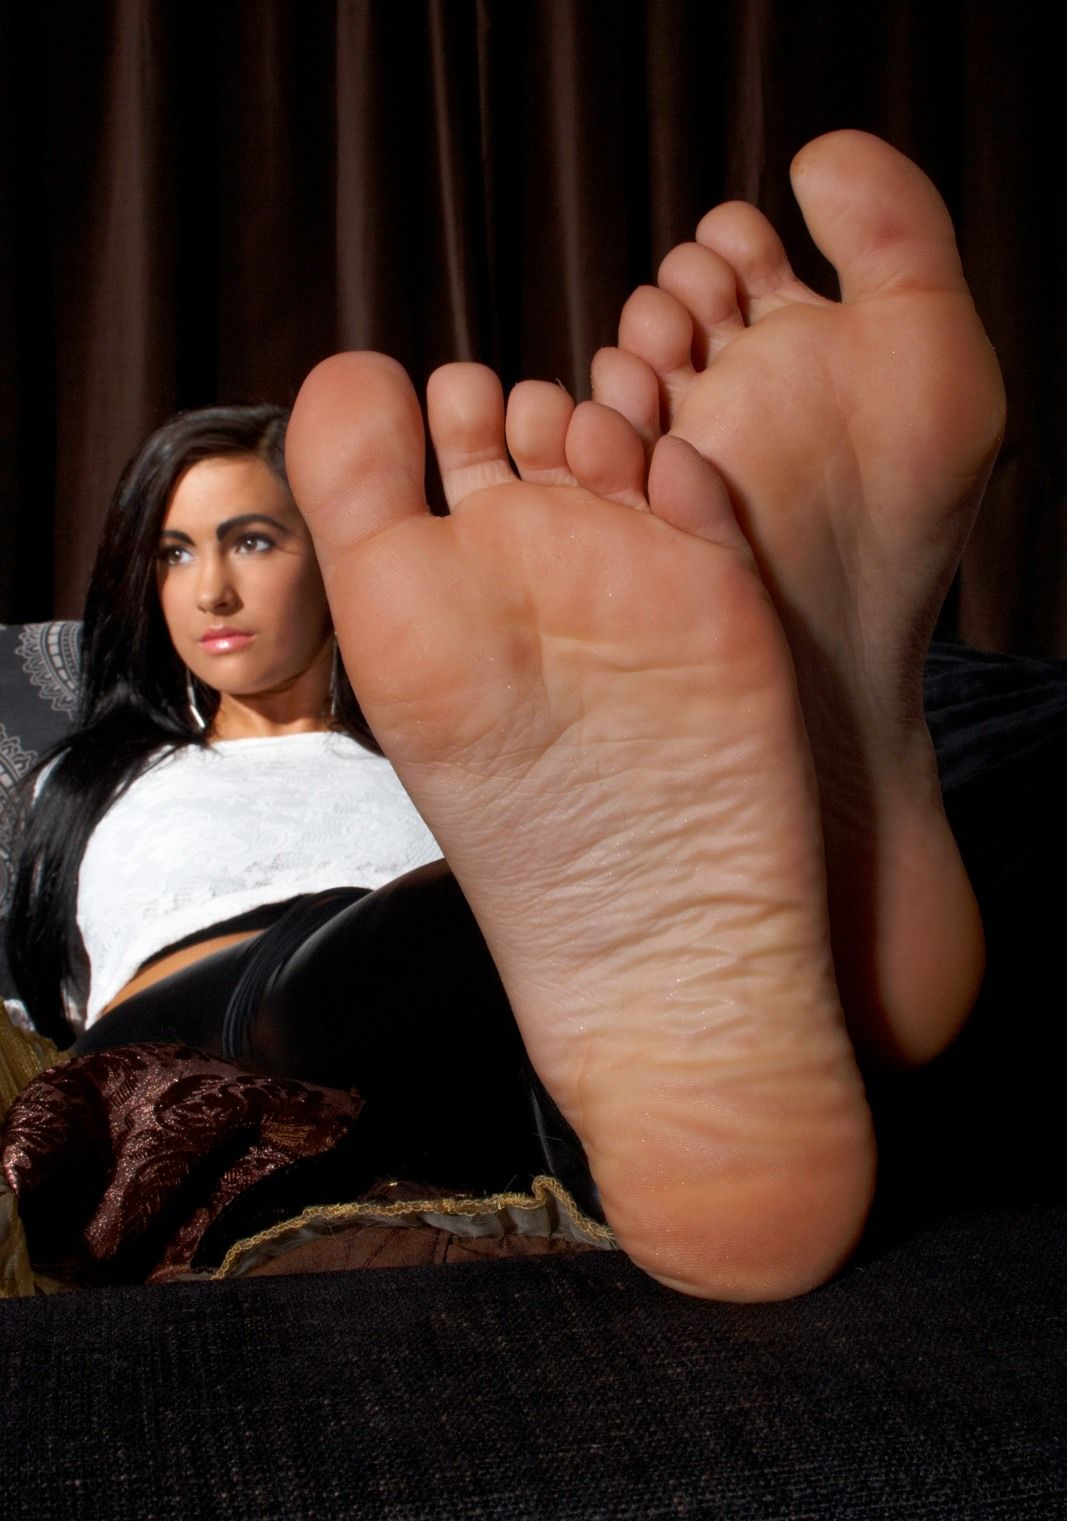 Sexiest soles in the world